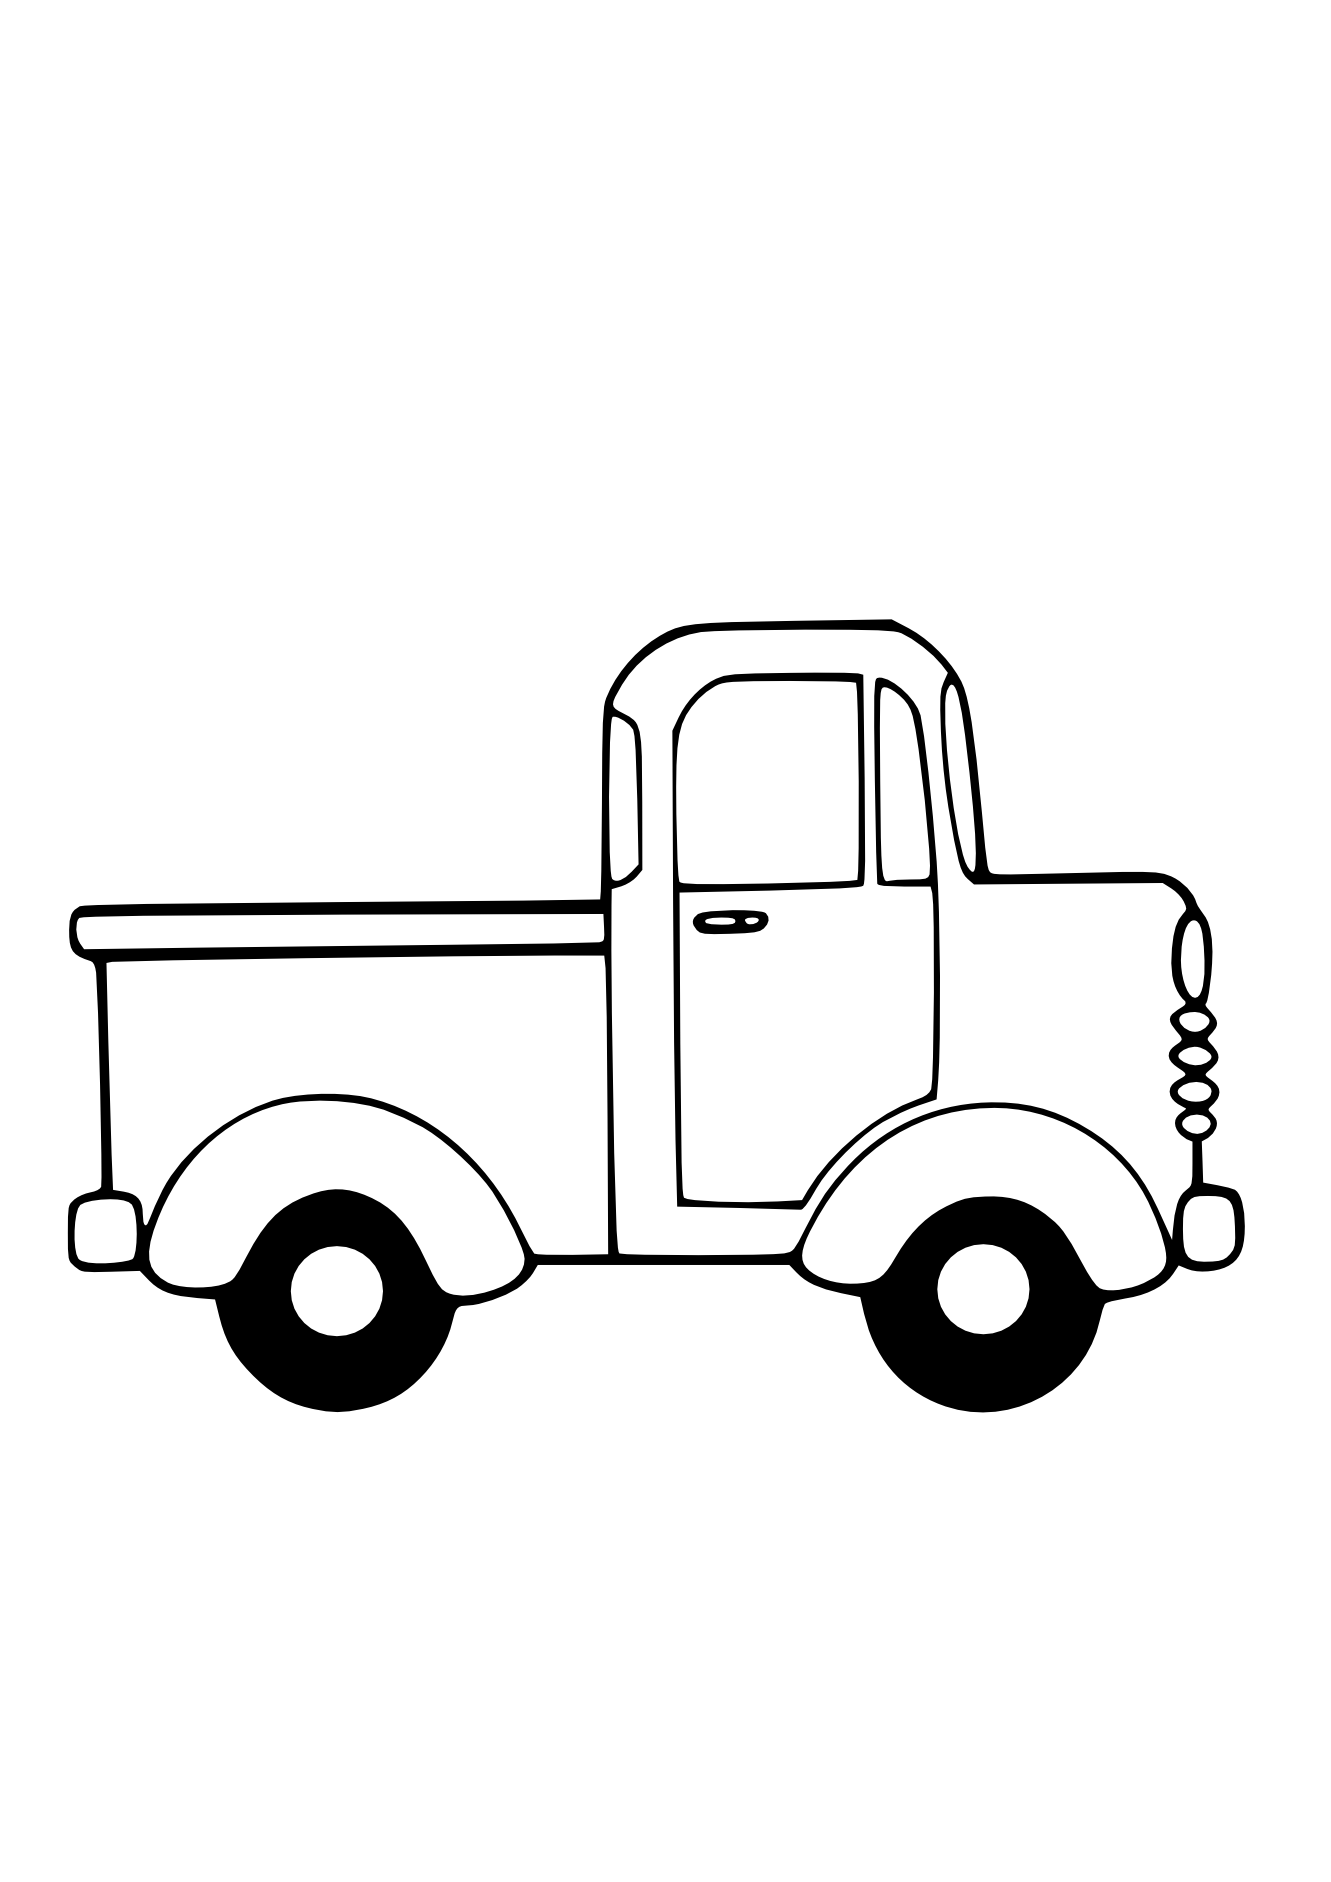 Chevy drawing clipart. Old truck black and